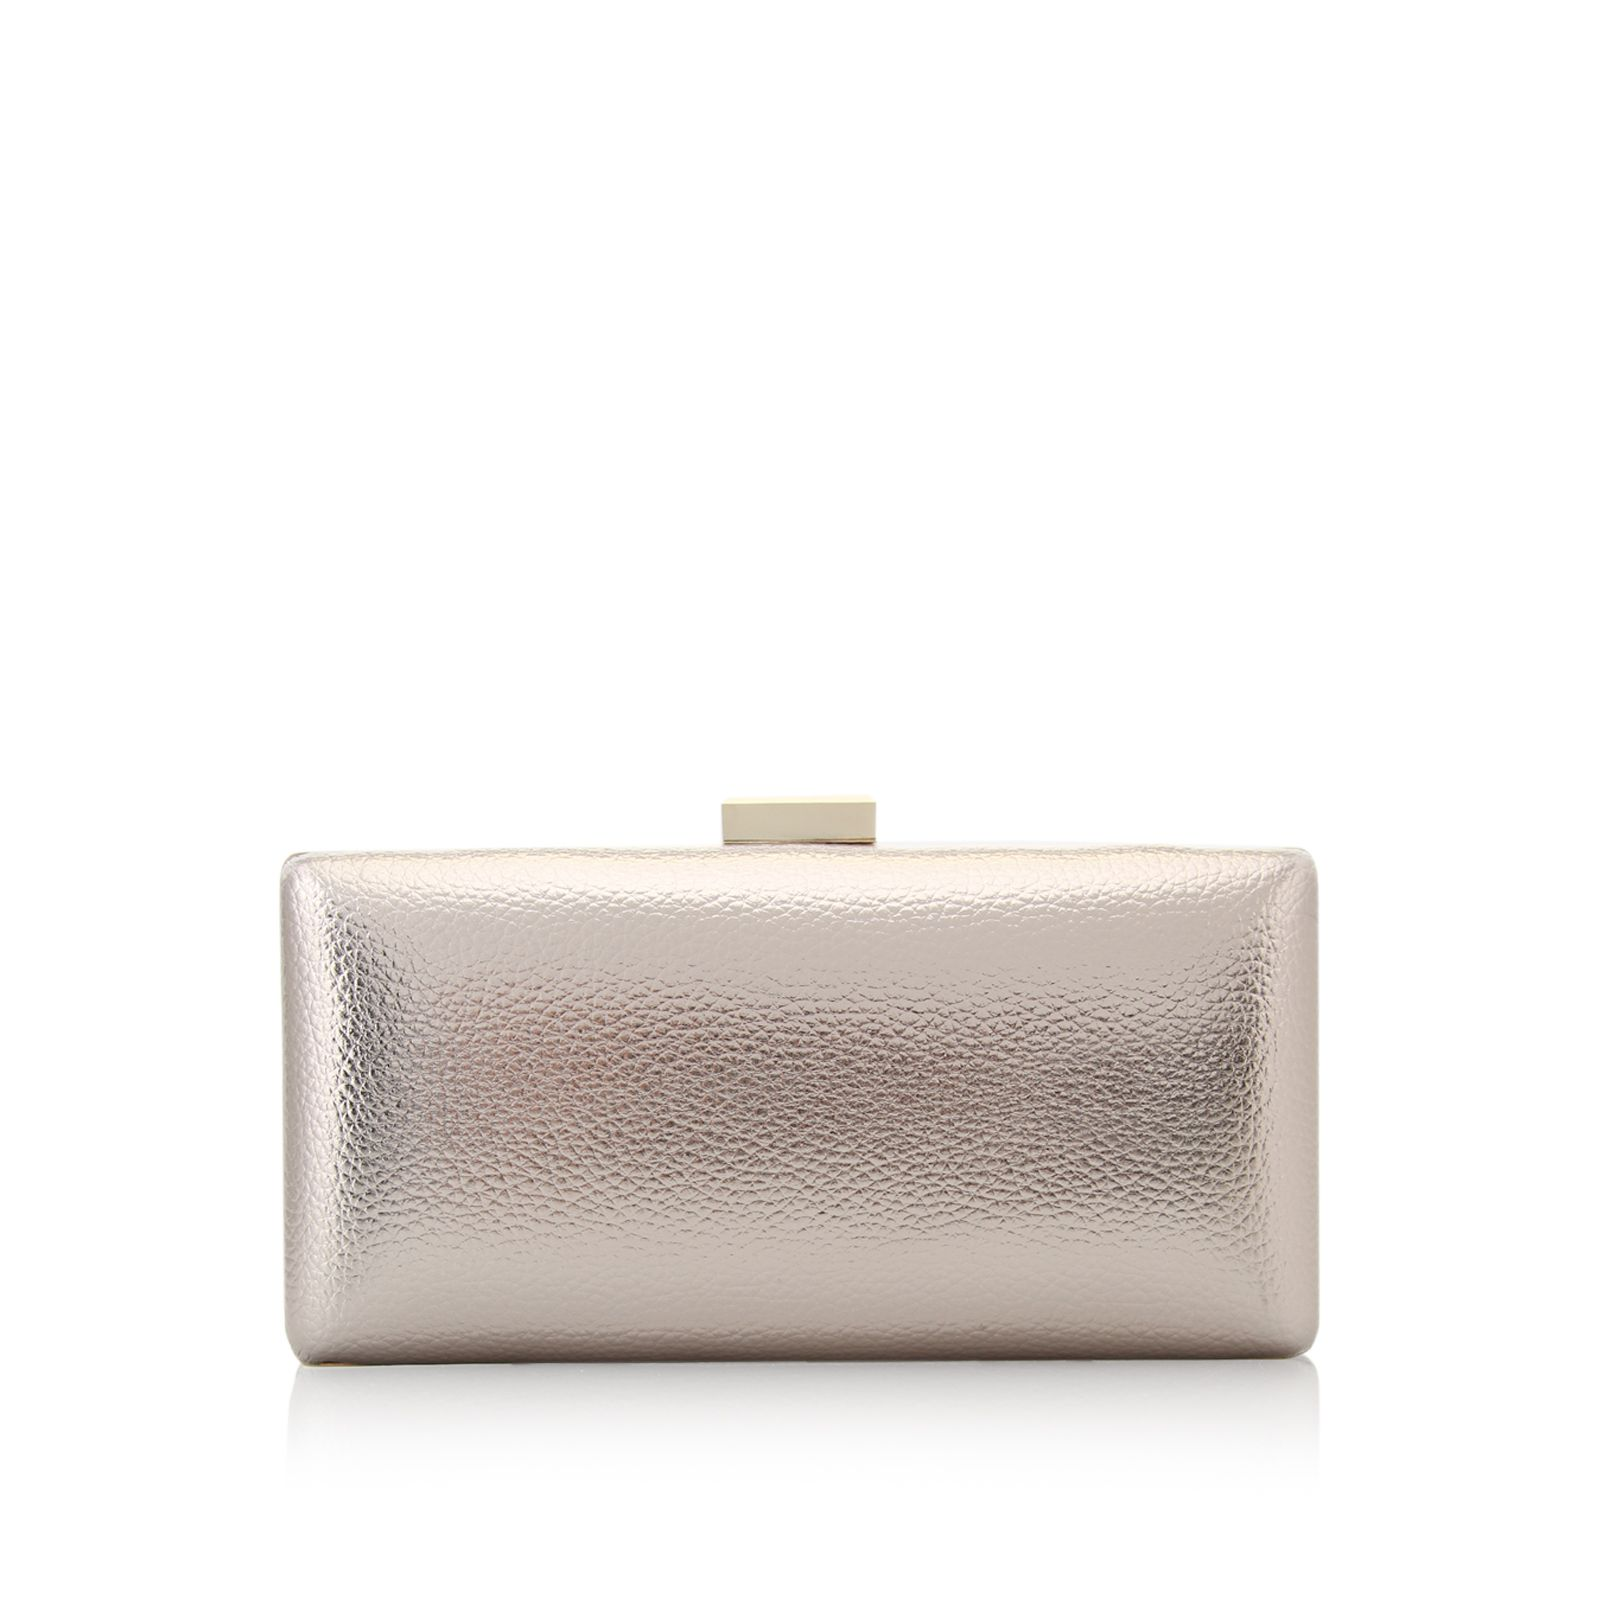 Tia clutch bag